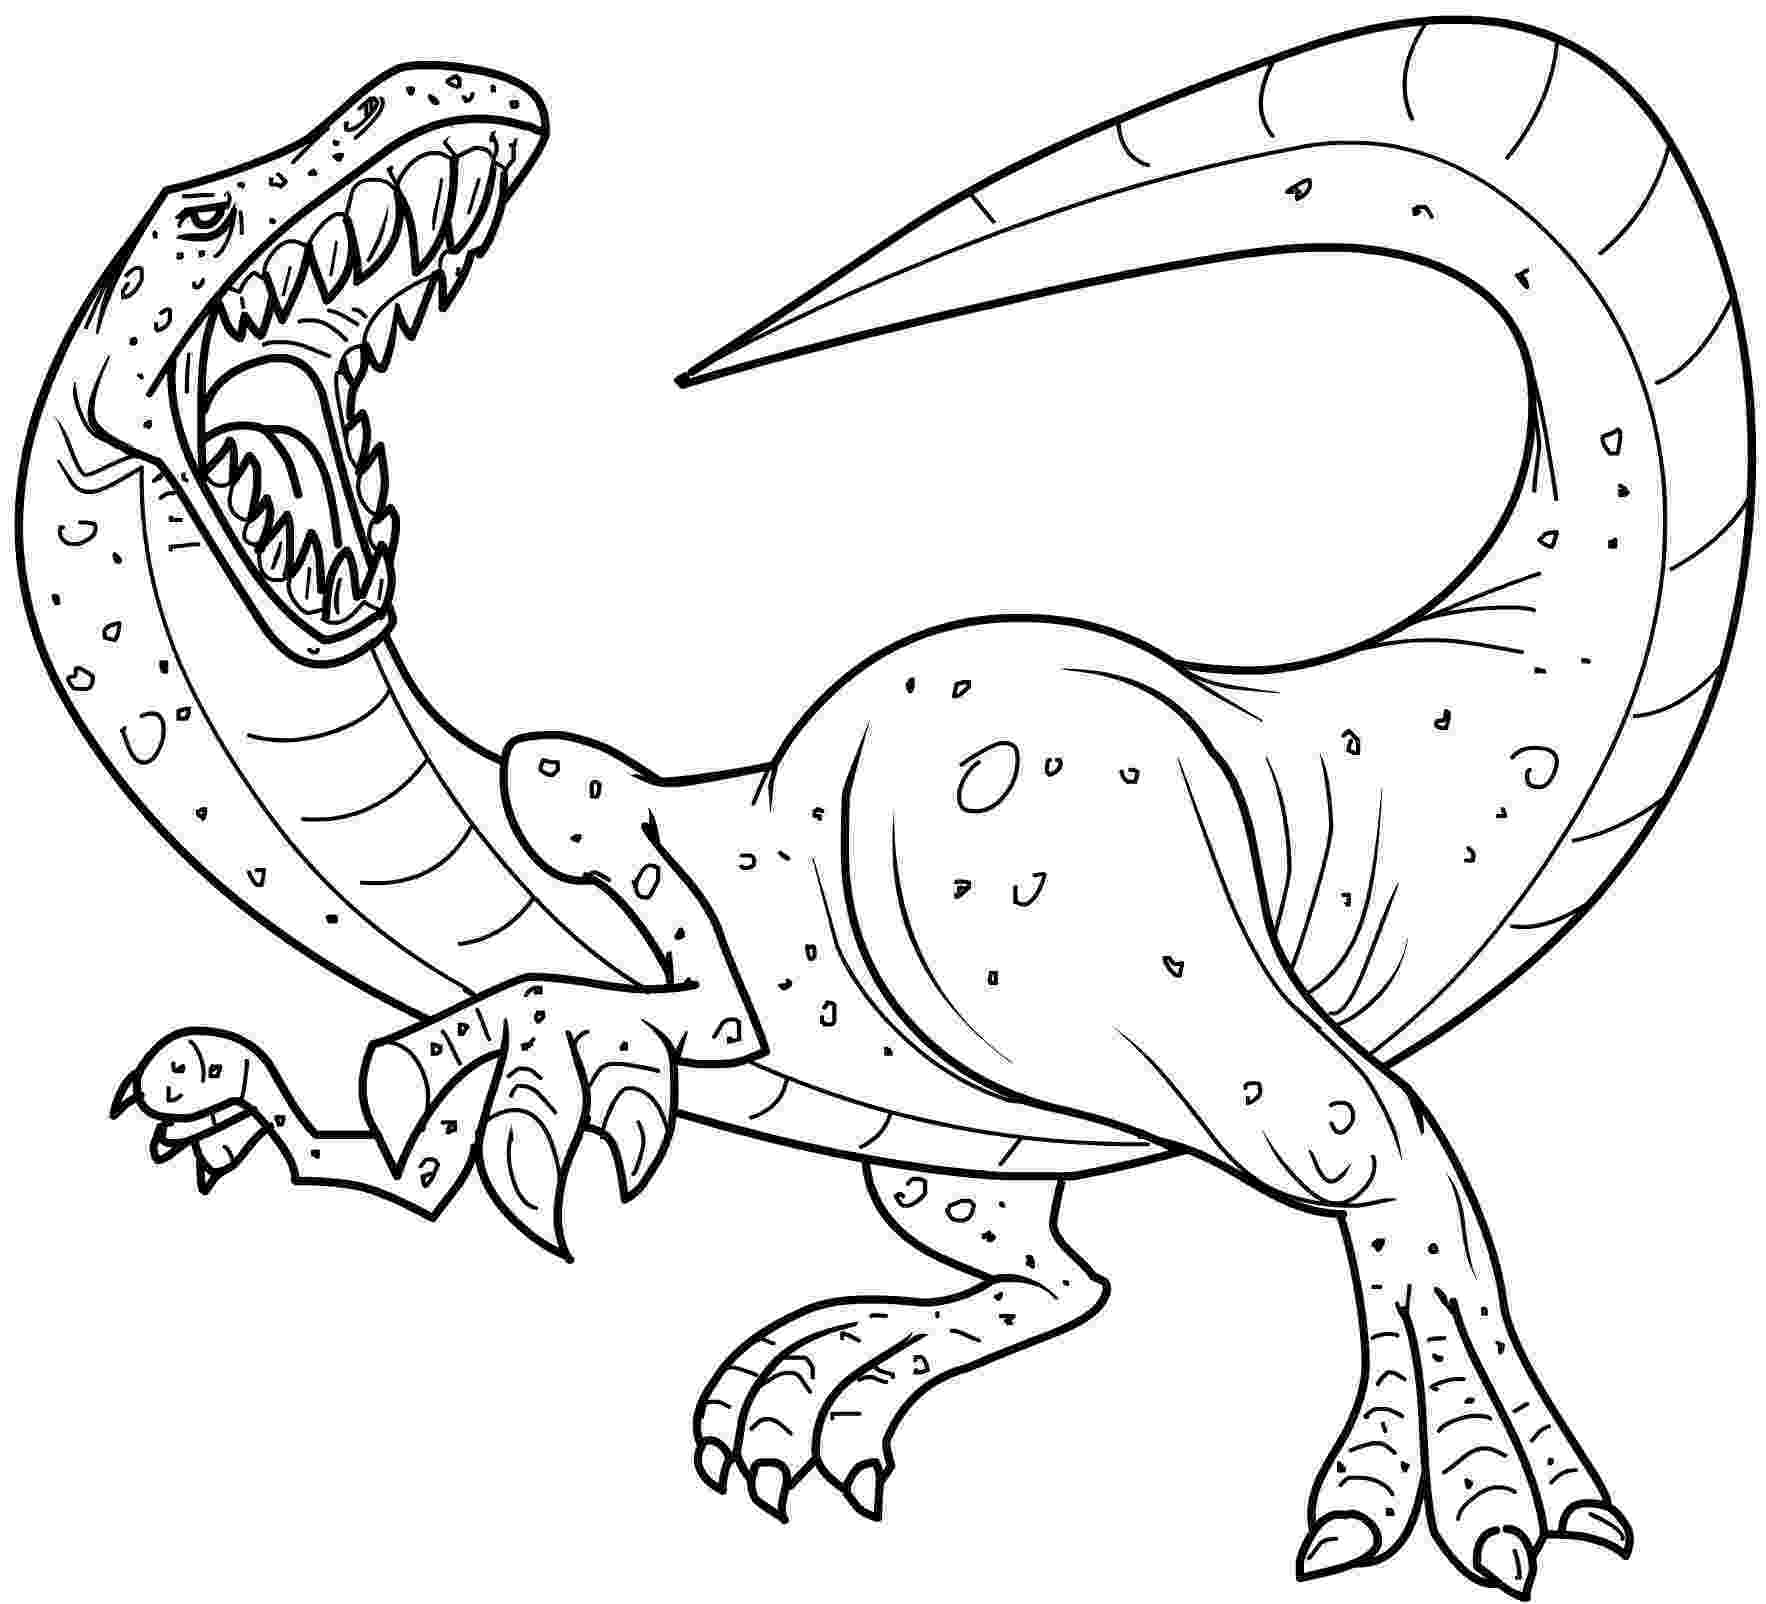 free printable dinosaur pictures dinosaur colouring pages in the playroom free pictures dinosaur printable